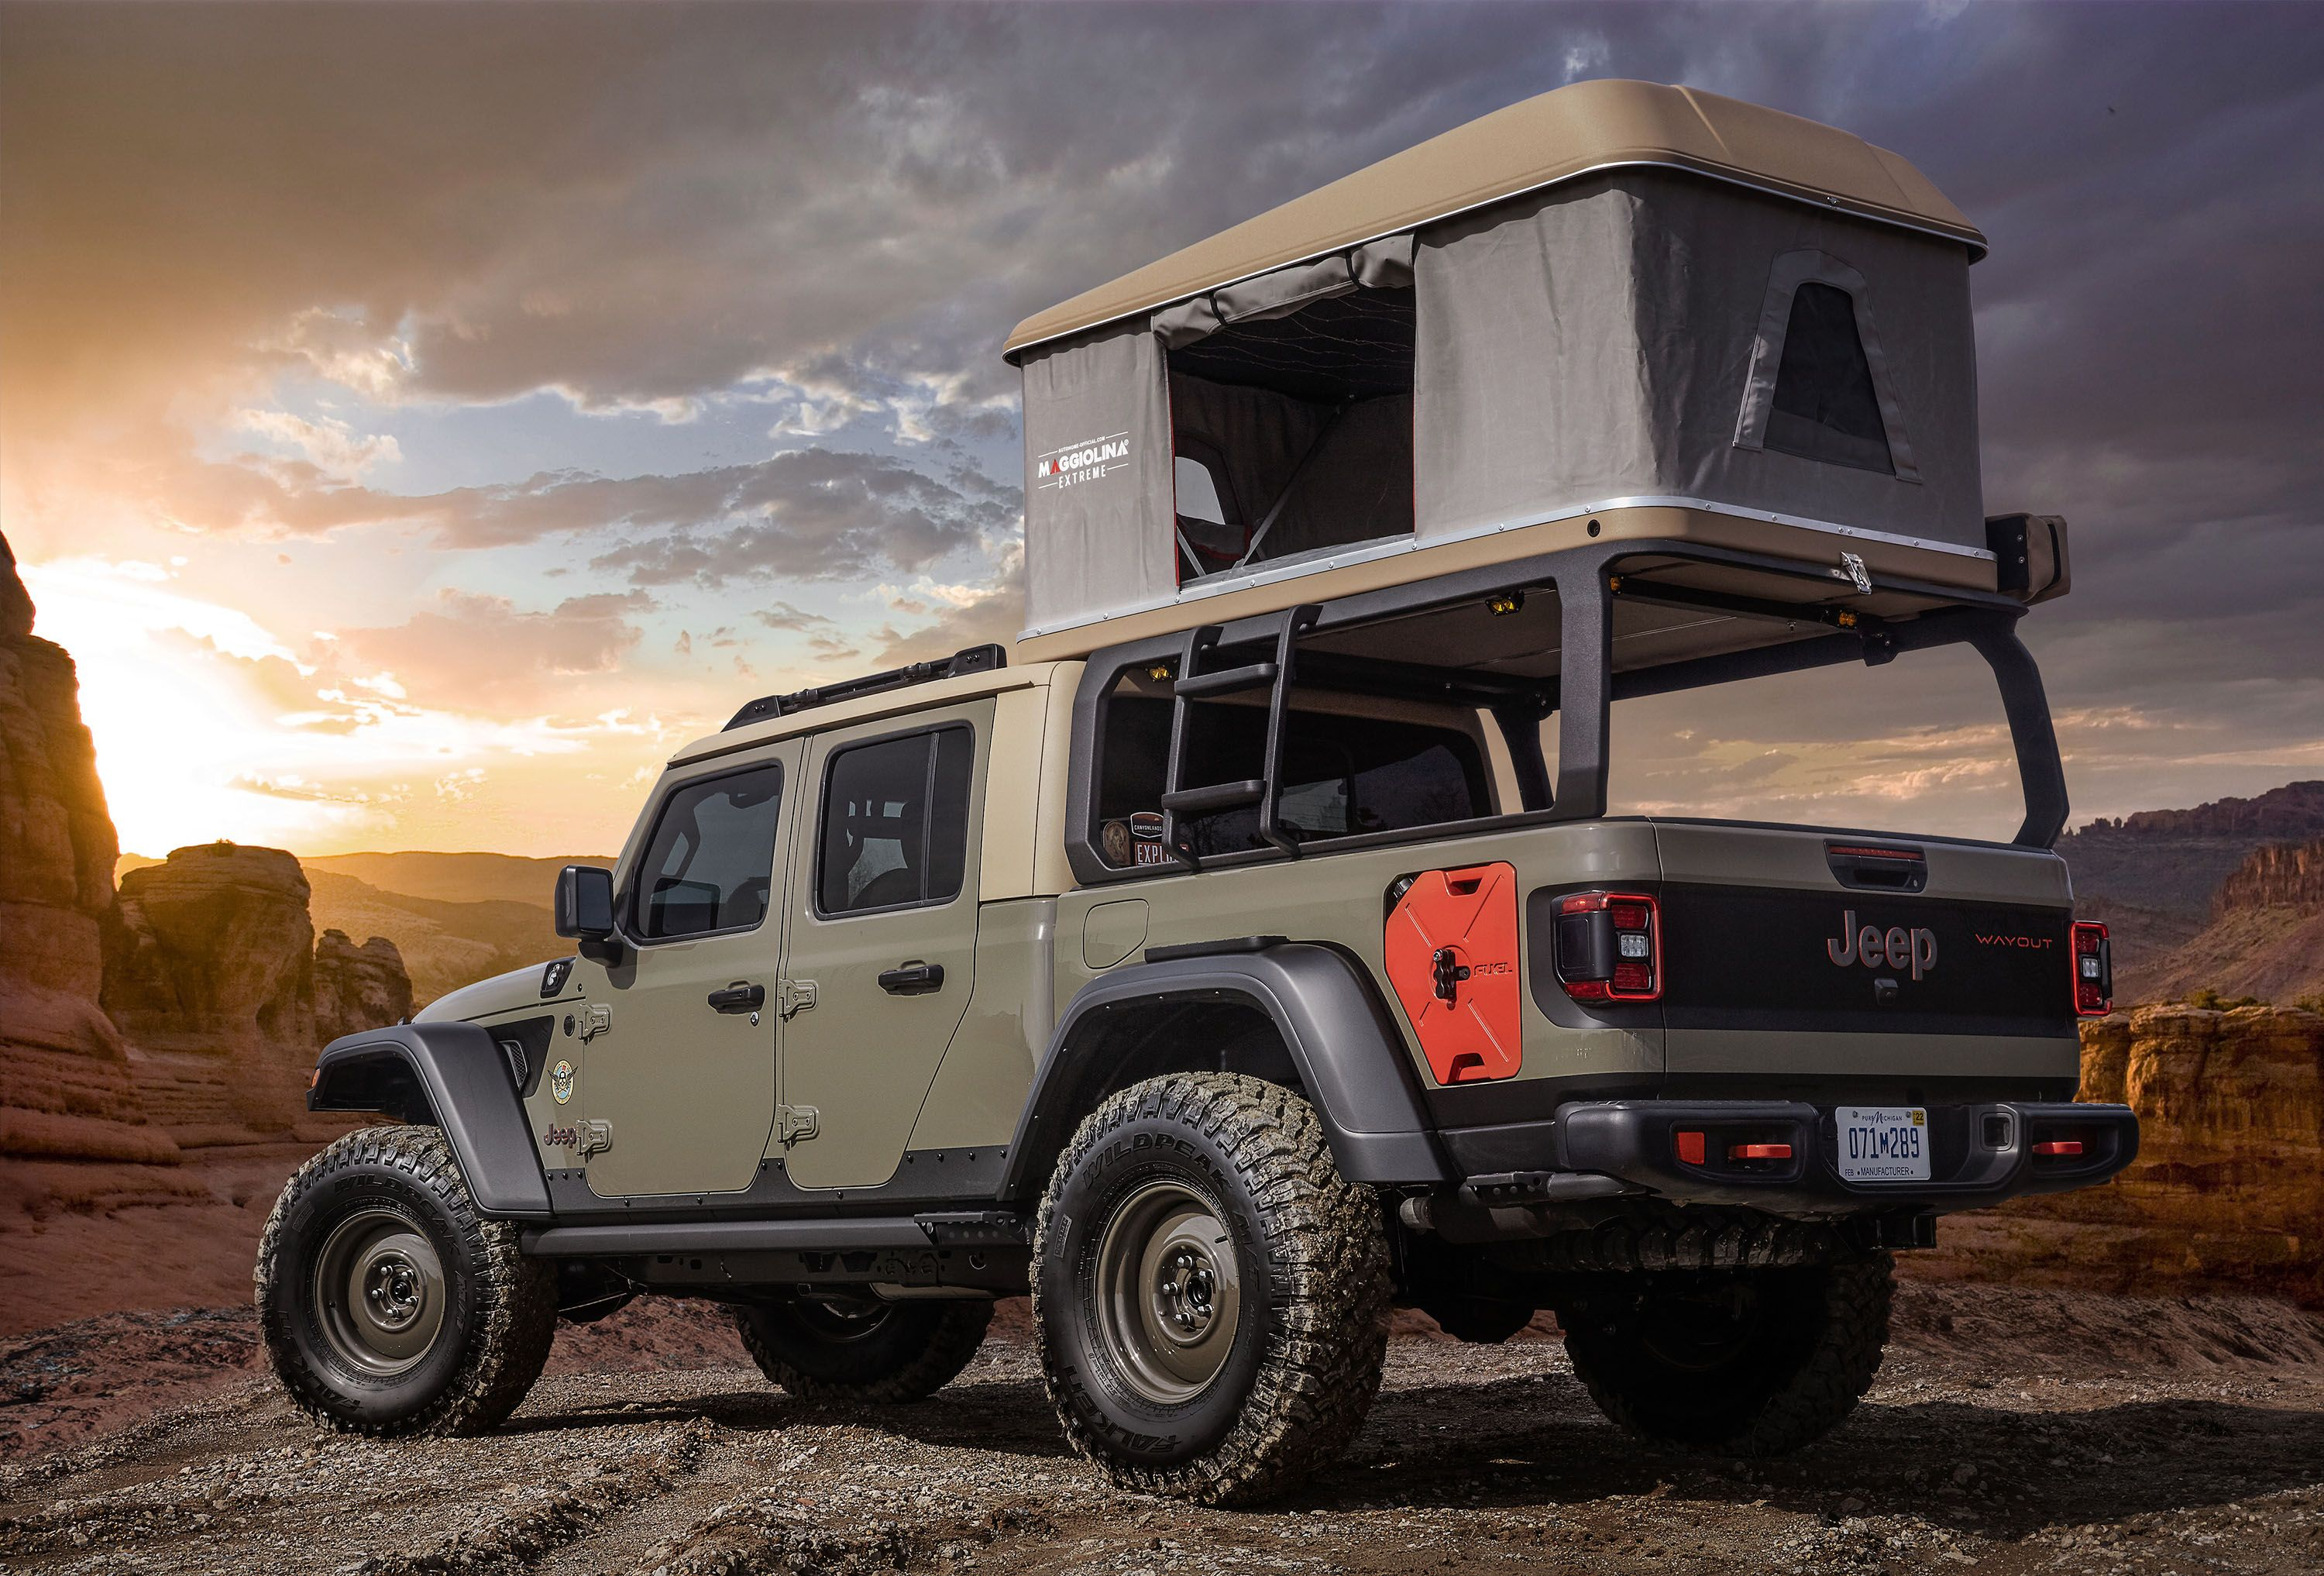 Jeep Just Released 6 Badass Easter Safari Truck Concepts Jeep